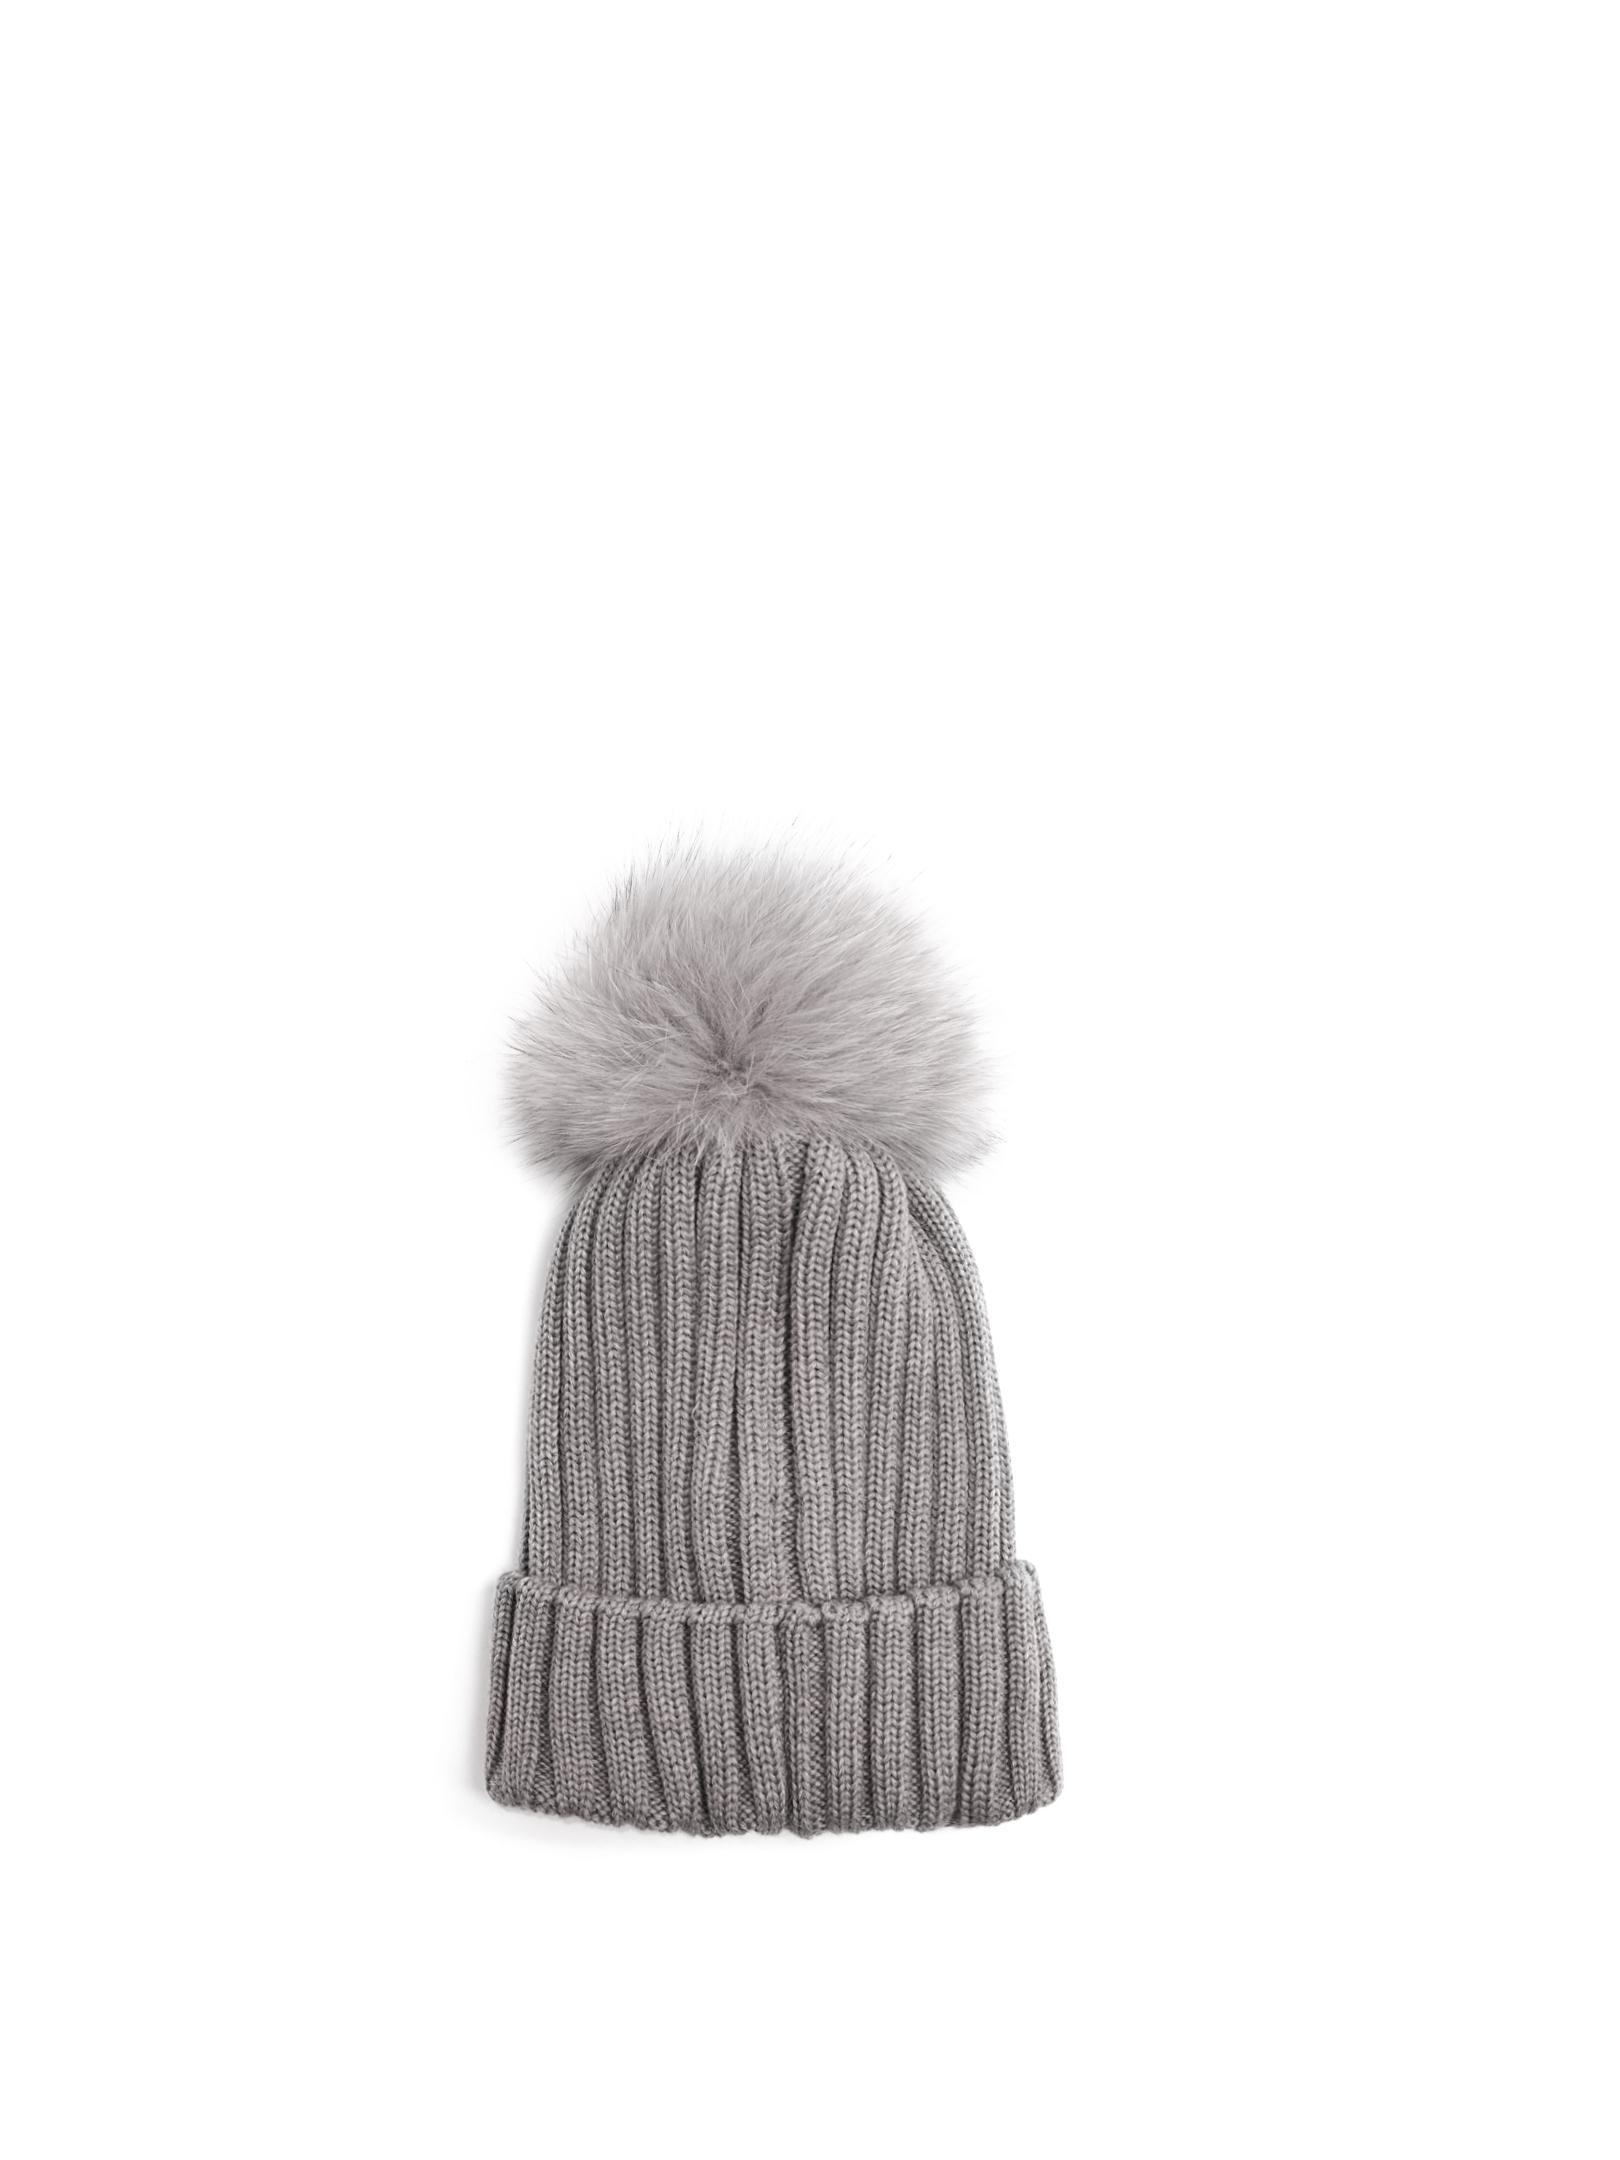 08080e1cacf Moncler Fur-pompom Wool Beanie Hat in Gray - Lyst